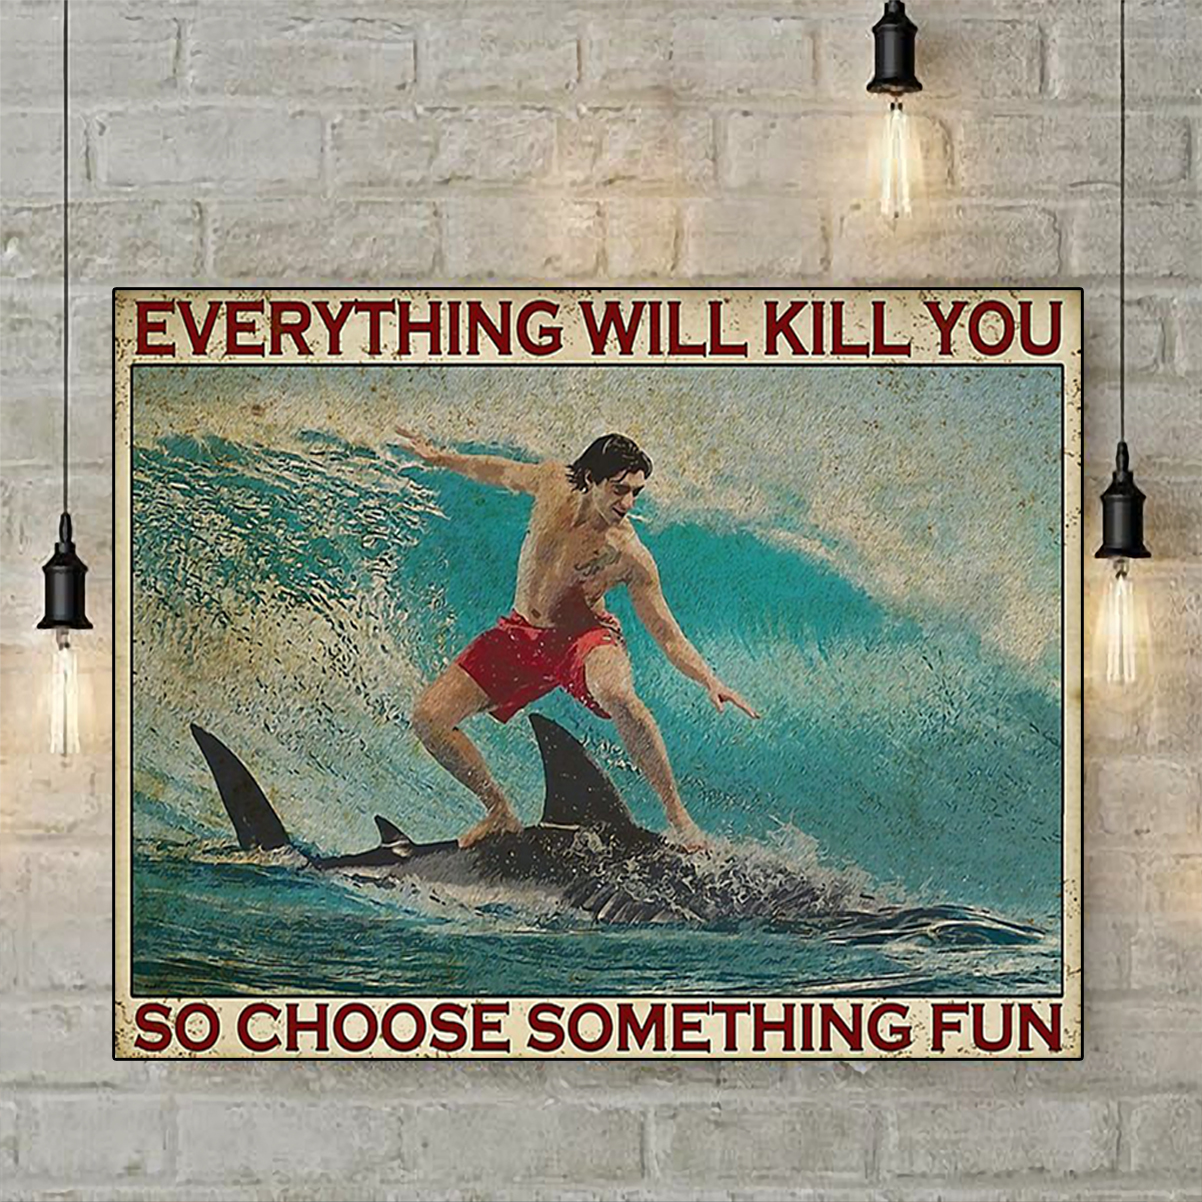 Surfboarding shark everything will kill you so choose something fun poster A2